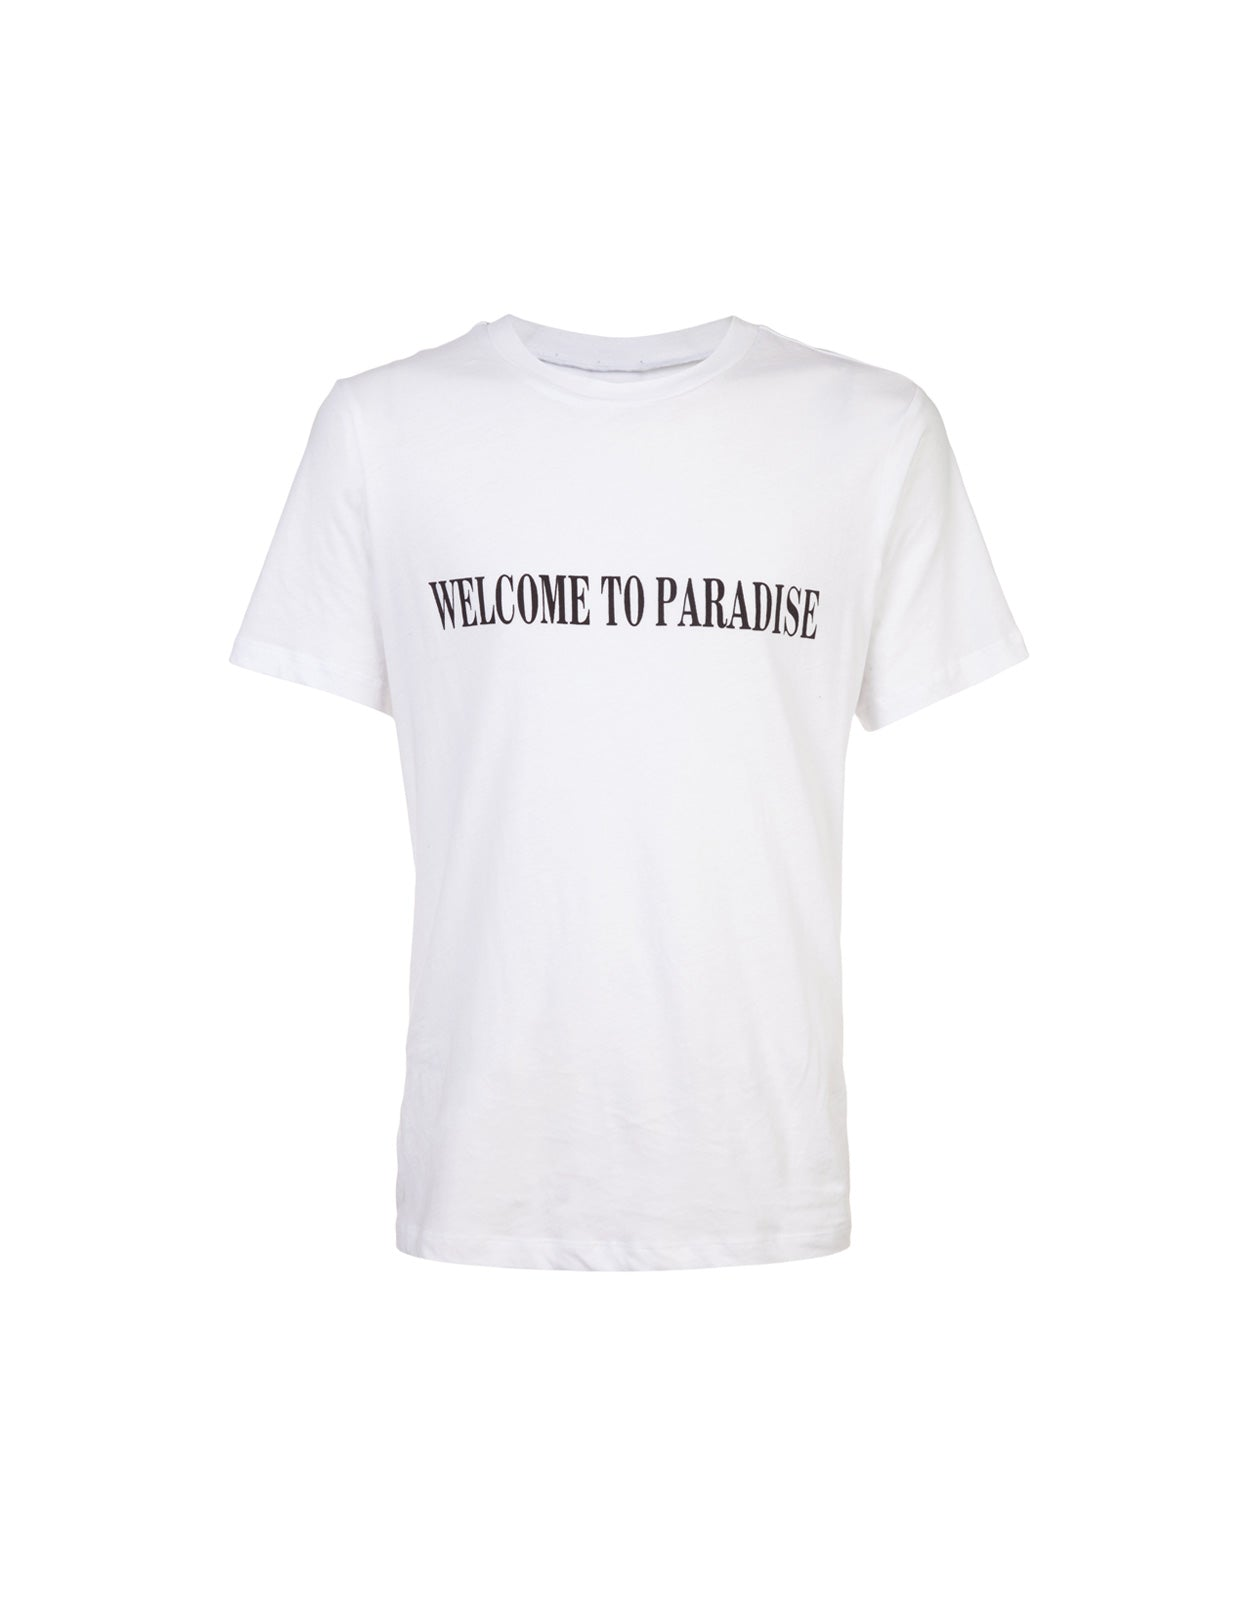 White tee with 'welcome to paradise' printed across the front.